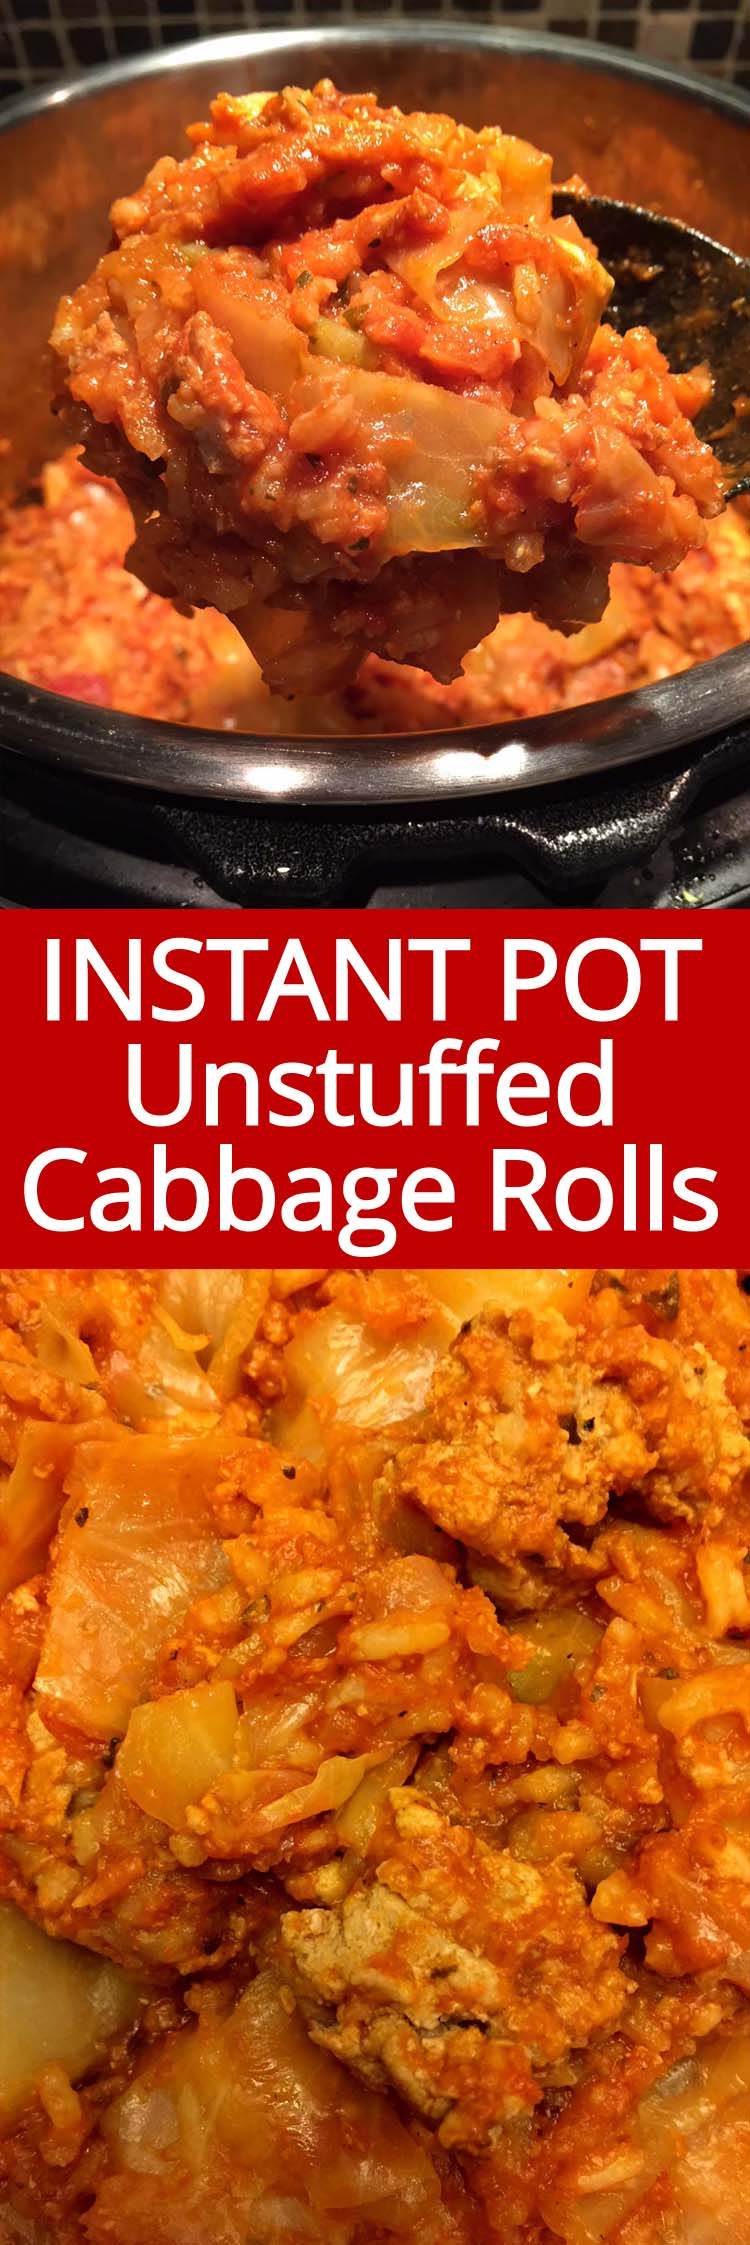 These Instant Pot unstuffed cabbage rolls casserole is amazing! One-pot dinner, just dump everything in the Instant Pot and enjoy! I love these lazy cabbage rolls!